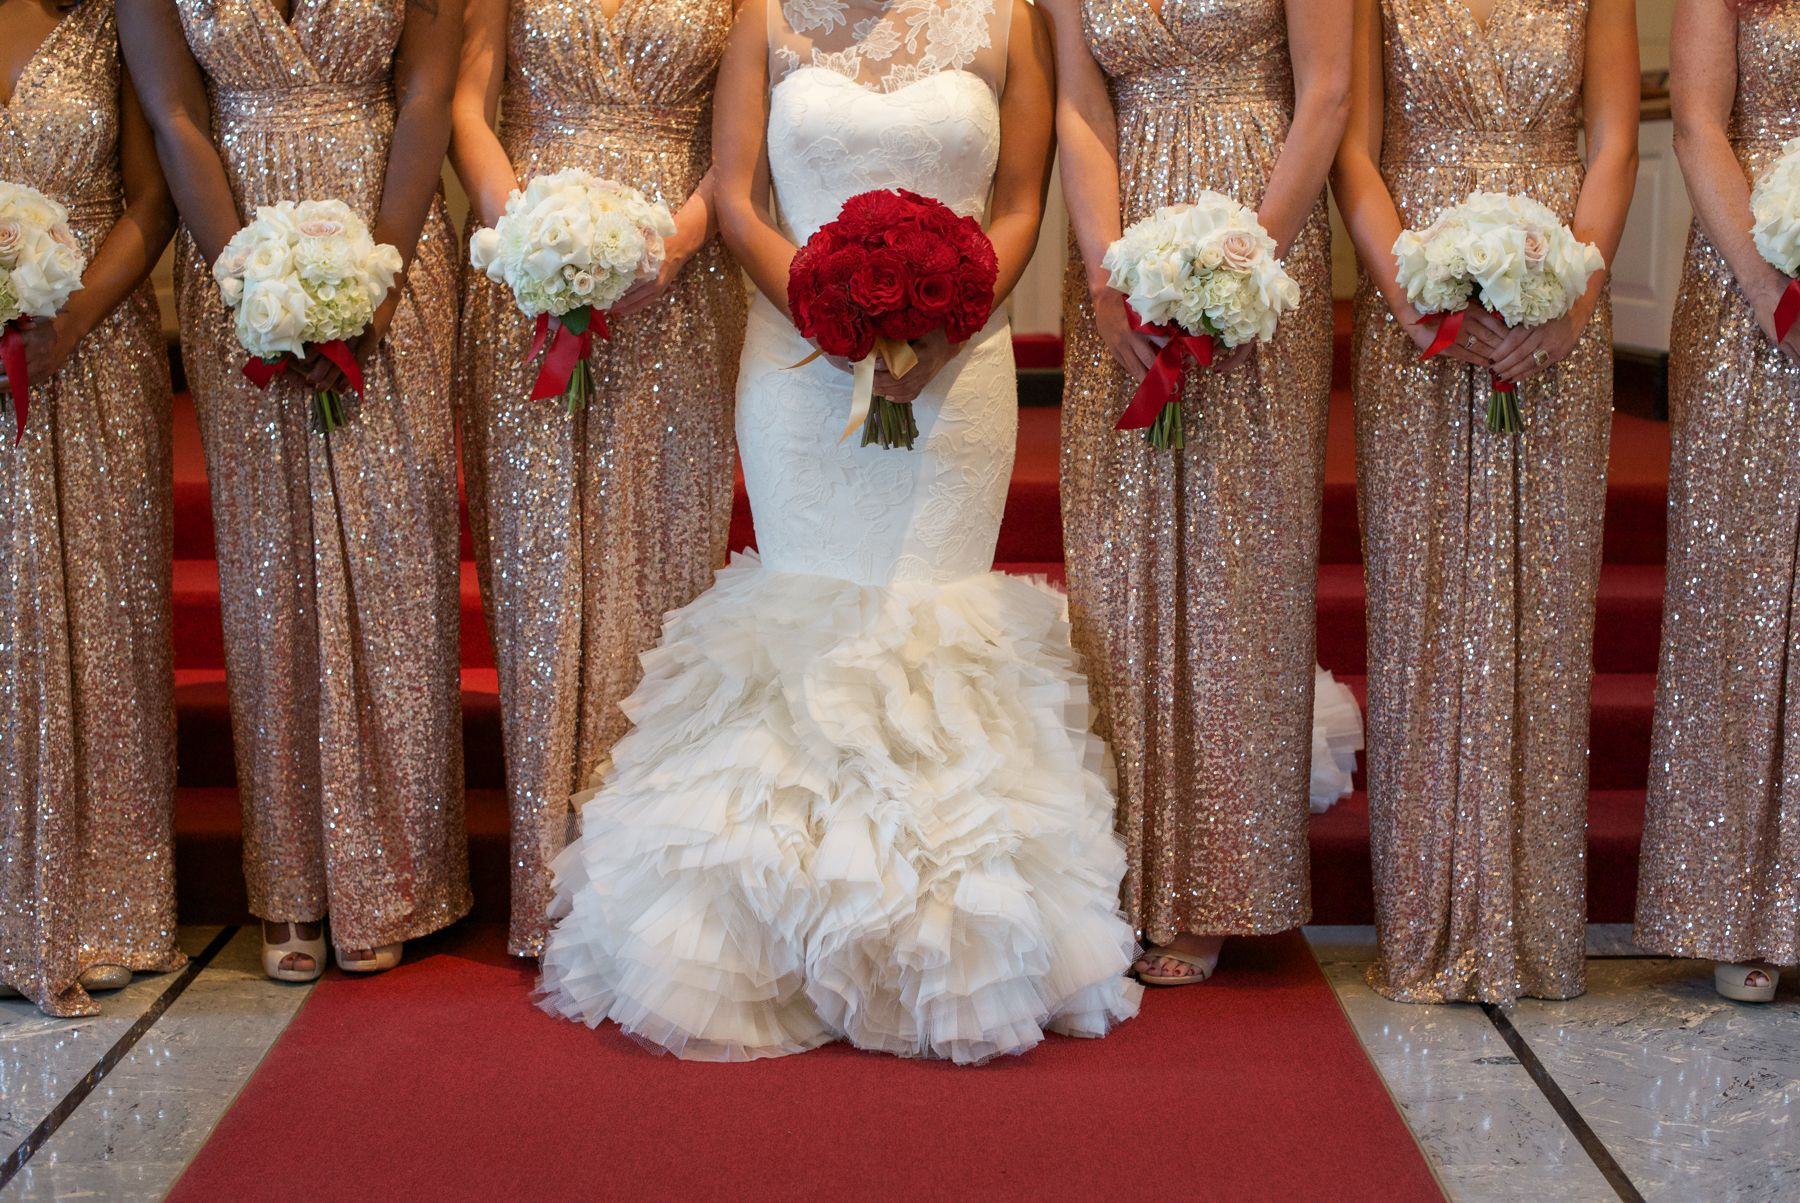 Lush Bride And Bridesmaids Bouquets In Red And White Red Gold Wedding Red Wedding Gold Bridesmaid Dresses [ 1203 x 1800 Pixel ]